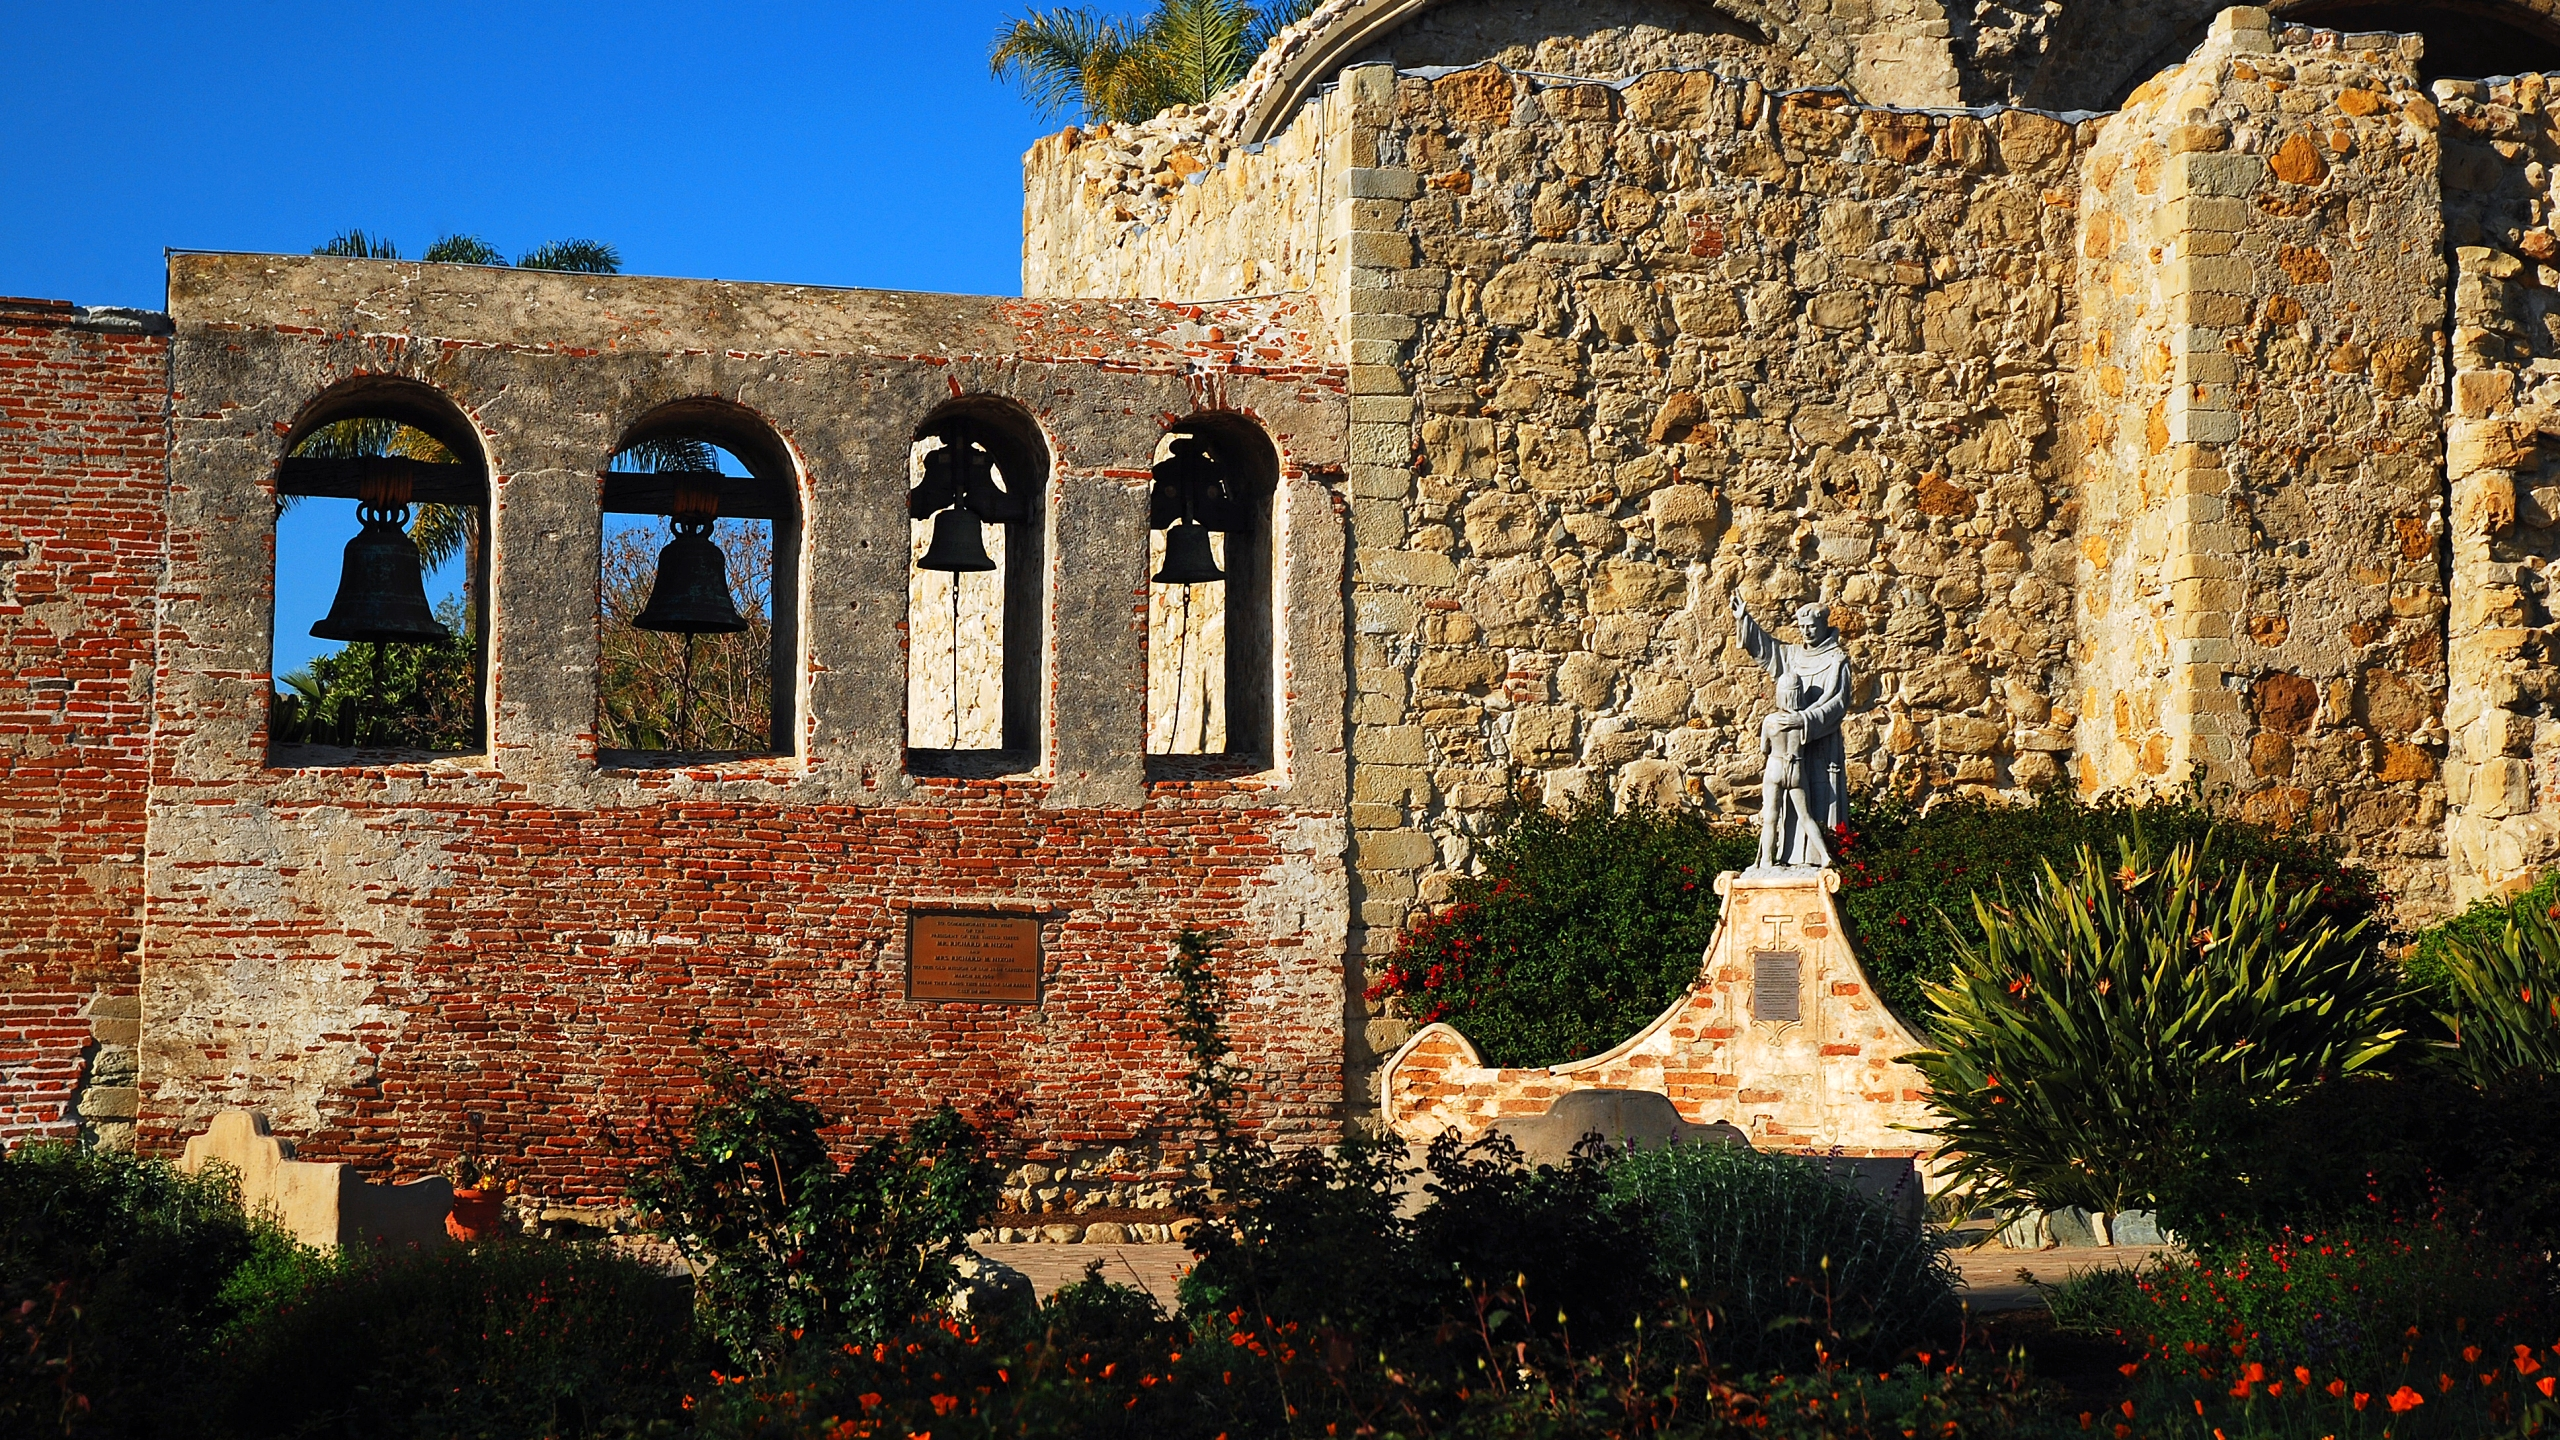 San Juan Capistrano, CA, USA March 25, 2008 A bell tower and stone wall are the only remaining pieces of the original Mission San Juan Capistrano in California. (Getty Images)